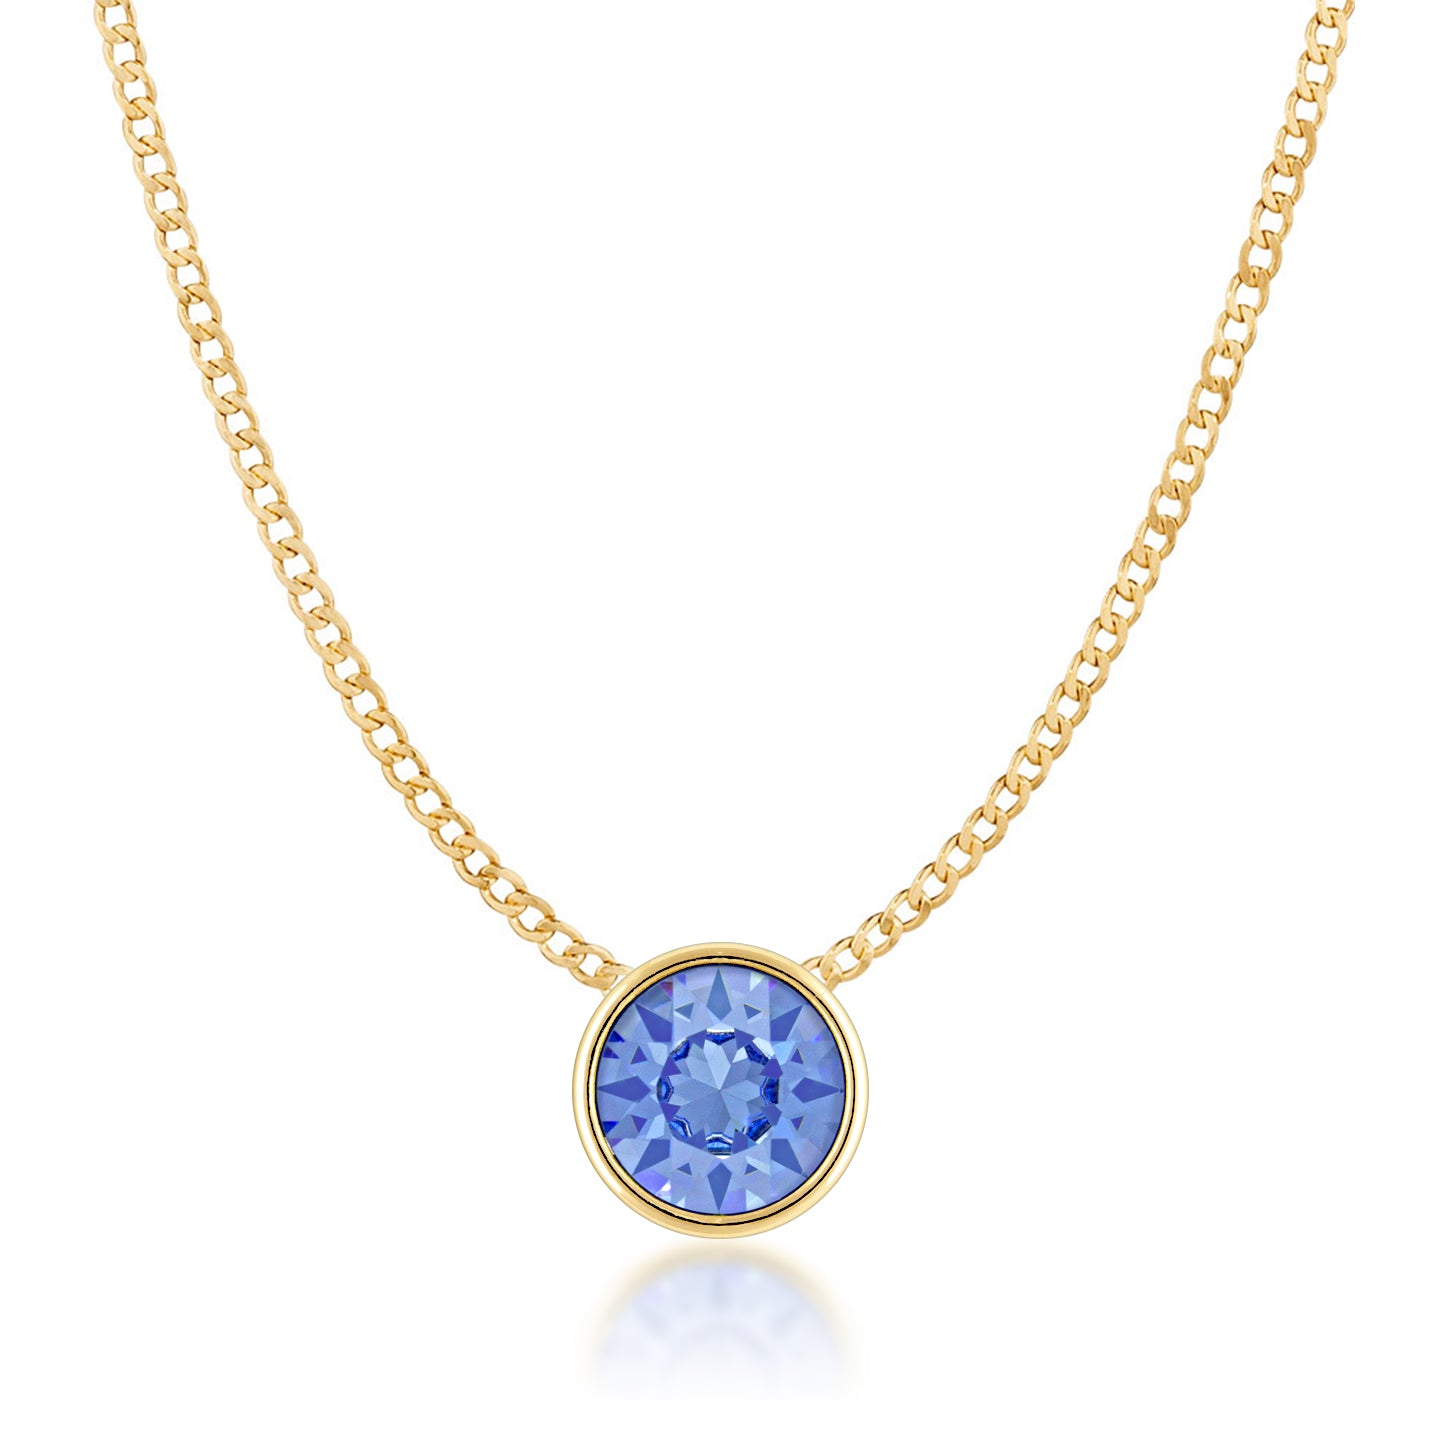 Harley Small Pendant Necklace with Blue Light Sapphire Round Crystals from Swarovski Gold Plated - Ed Heart